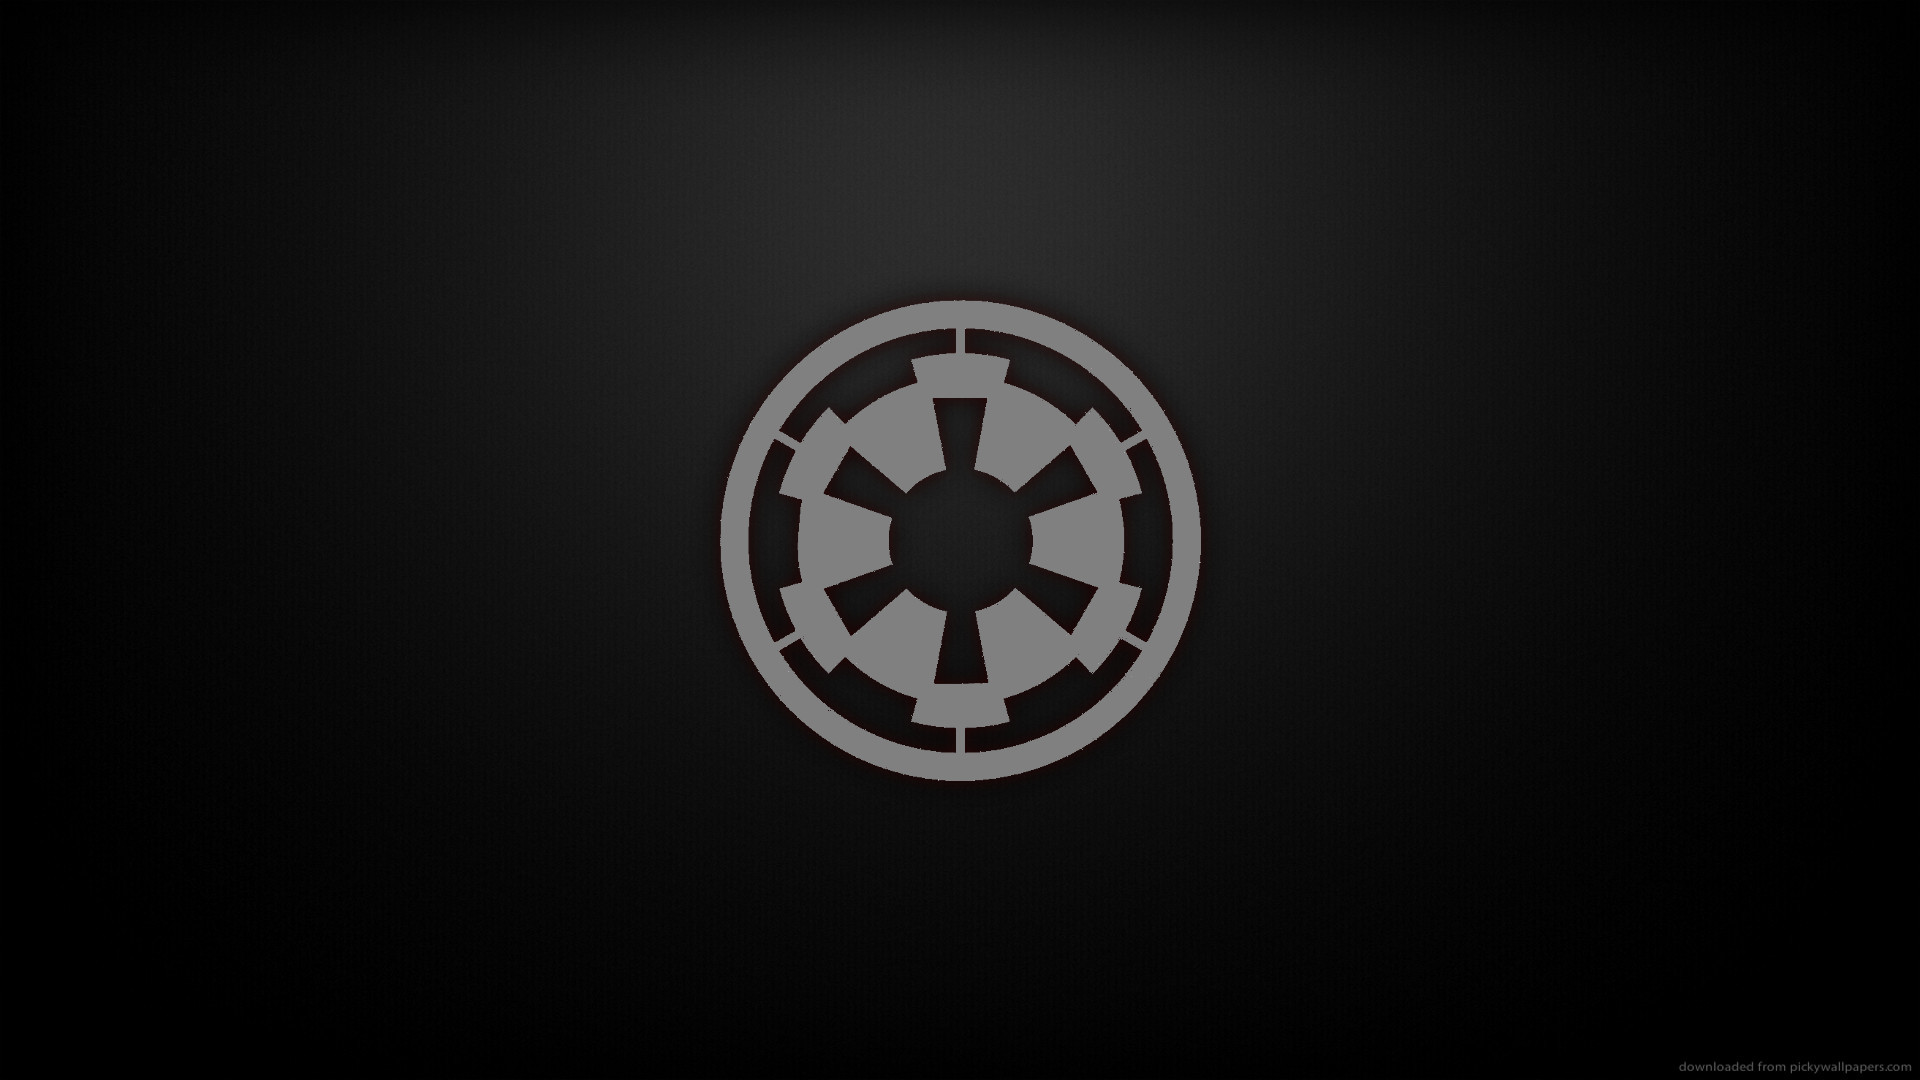 Star wars empire logo wallpaper 67 images - Republic star wars logo ...